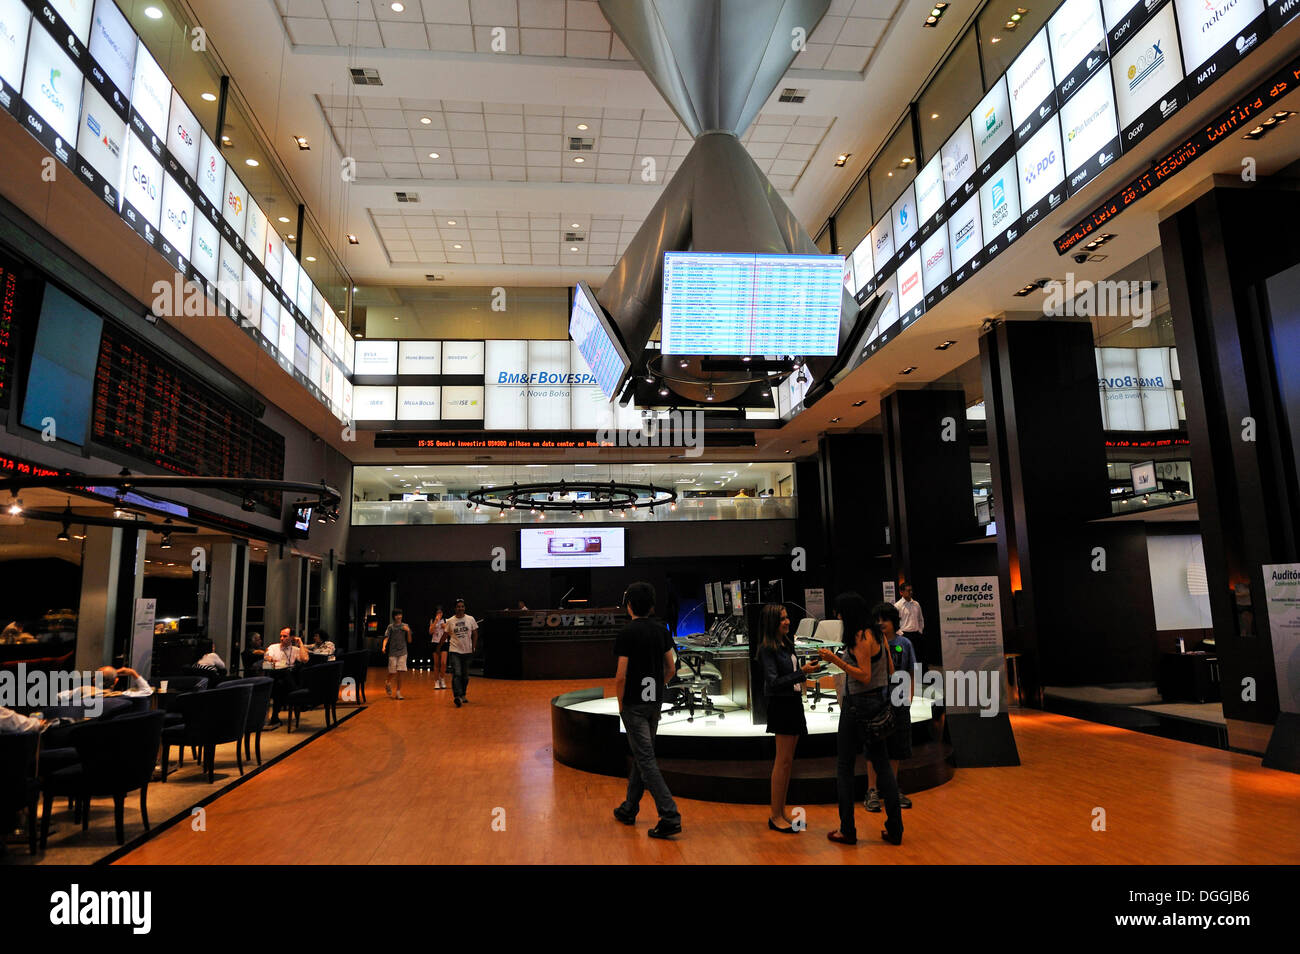 Visitor centre of Bovespa, the Sao Paulo Stock Exchange, Brazil, South America - Stock Image